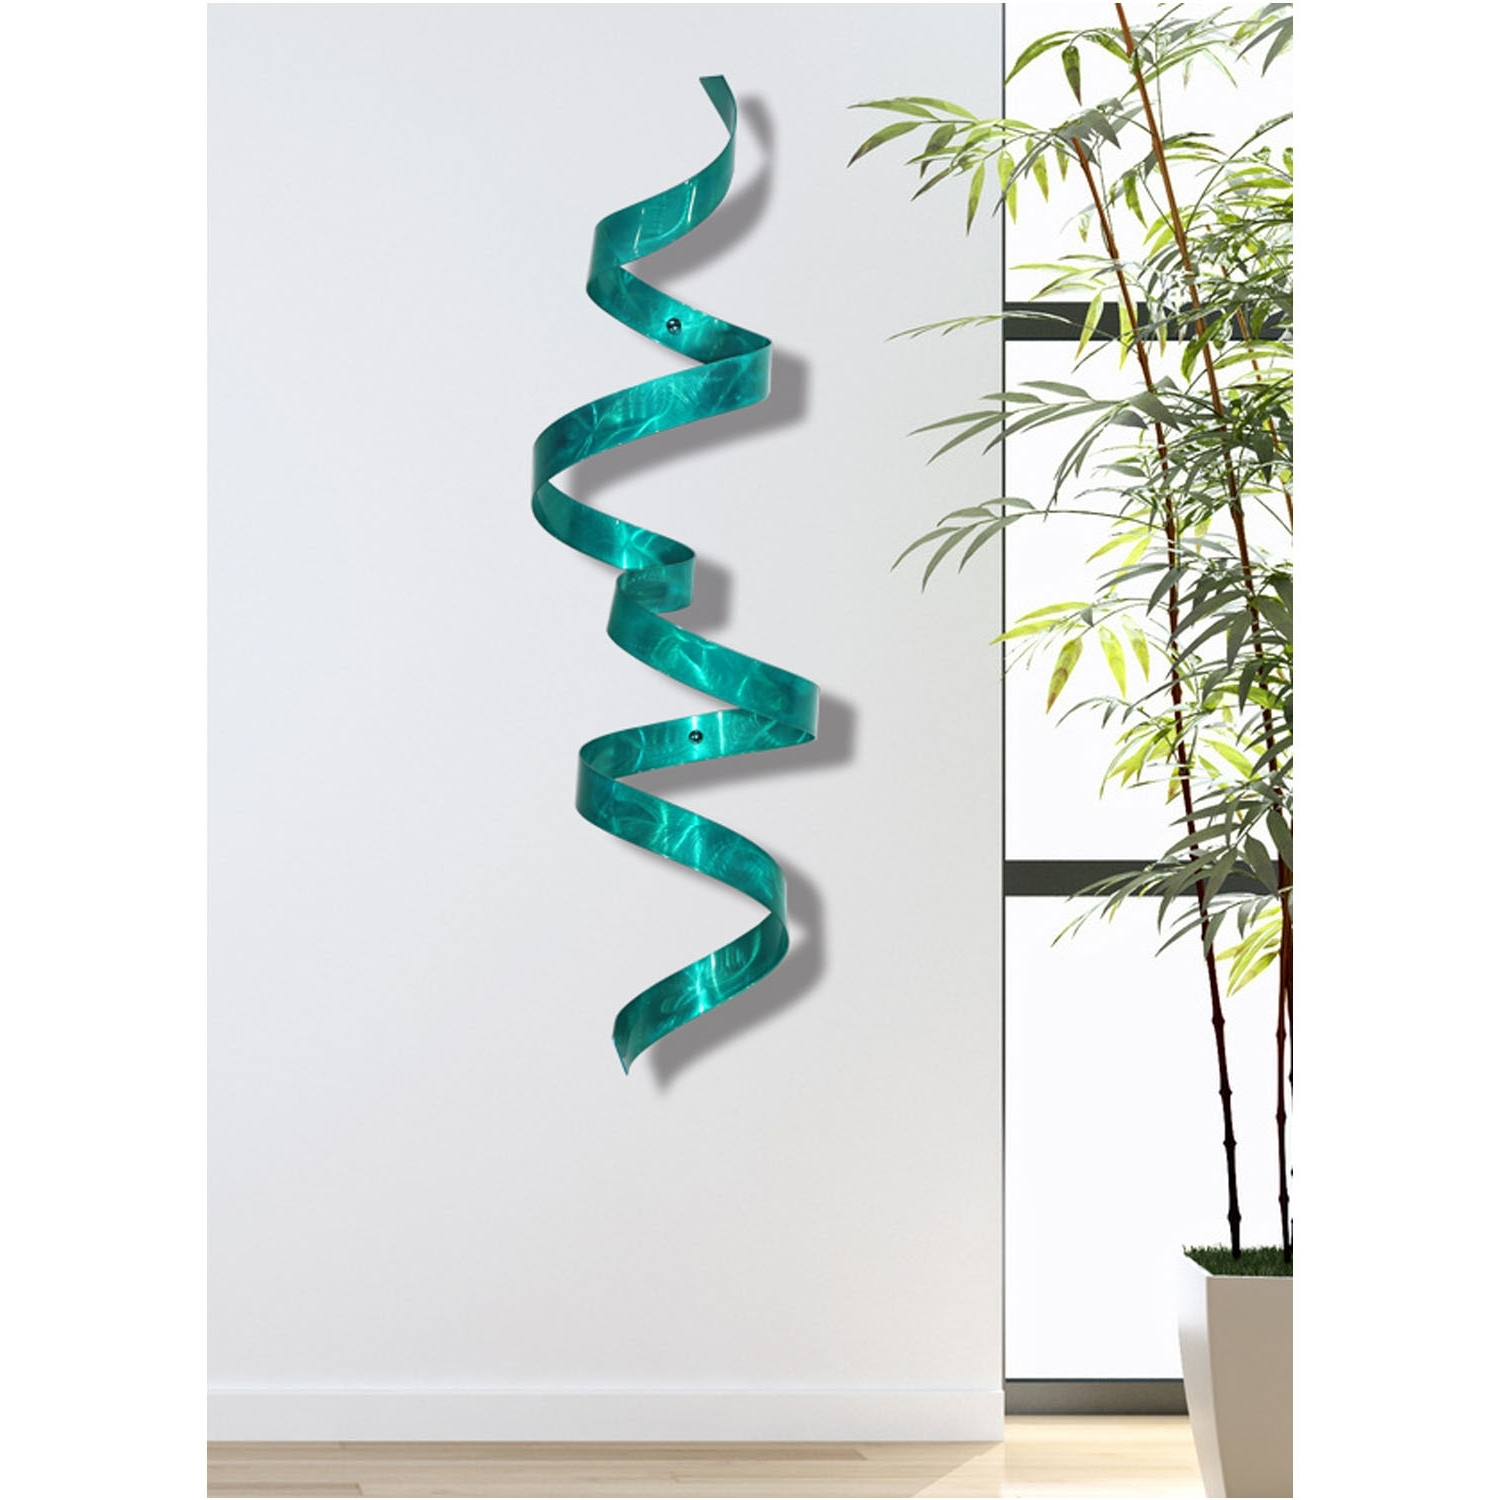 Teal Wall Twist – Blue 3D Abstract Twist Metal Wall Art Sculpture Inside Widely Used Teal Metal Wall Art (View 13 of 15)